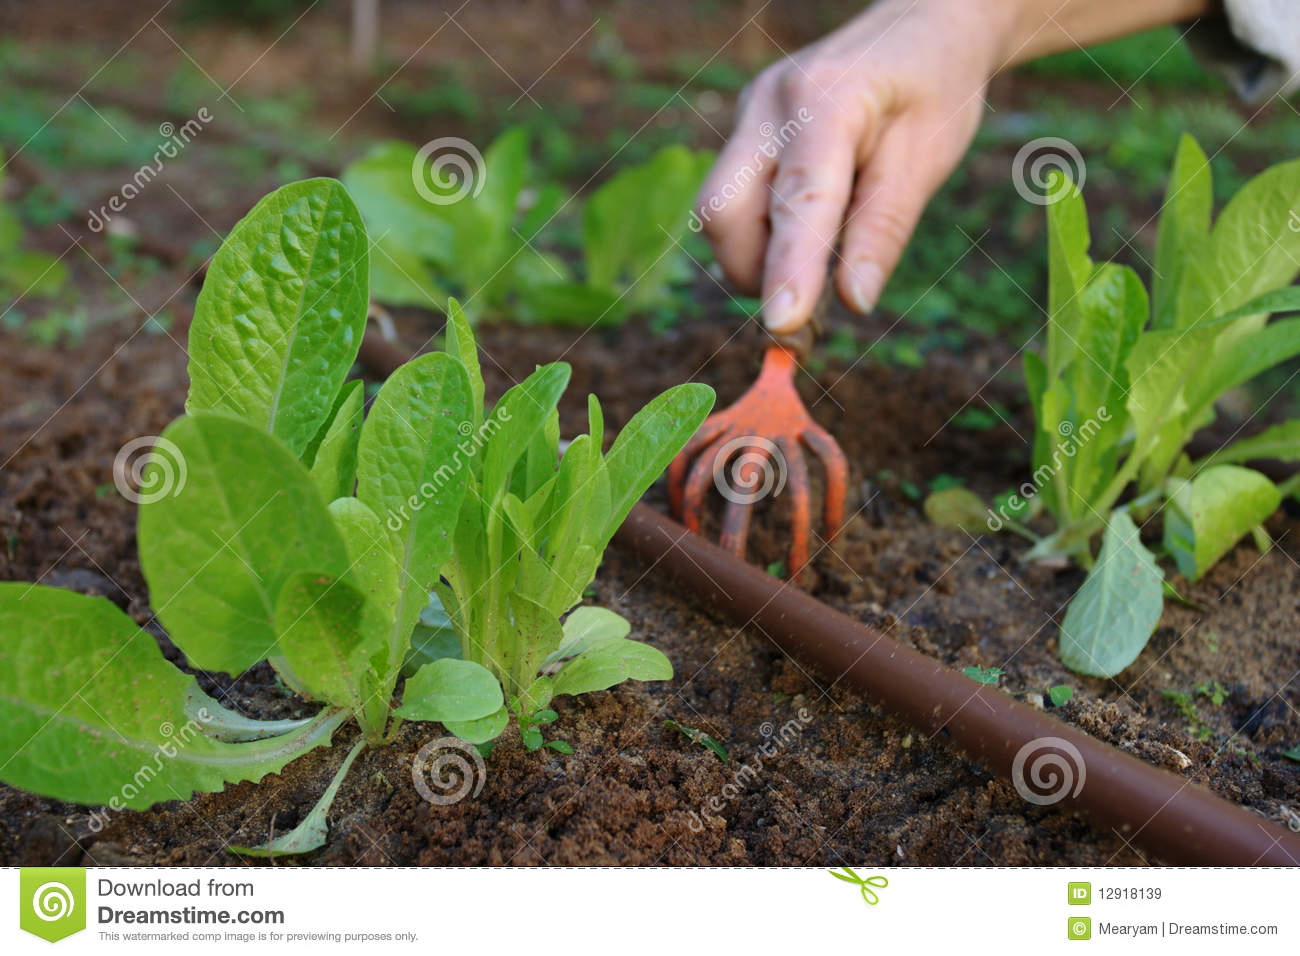 Lettuce plants cultivation in a home garden stock image for Home garden plants